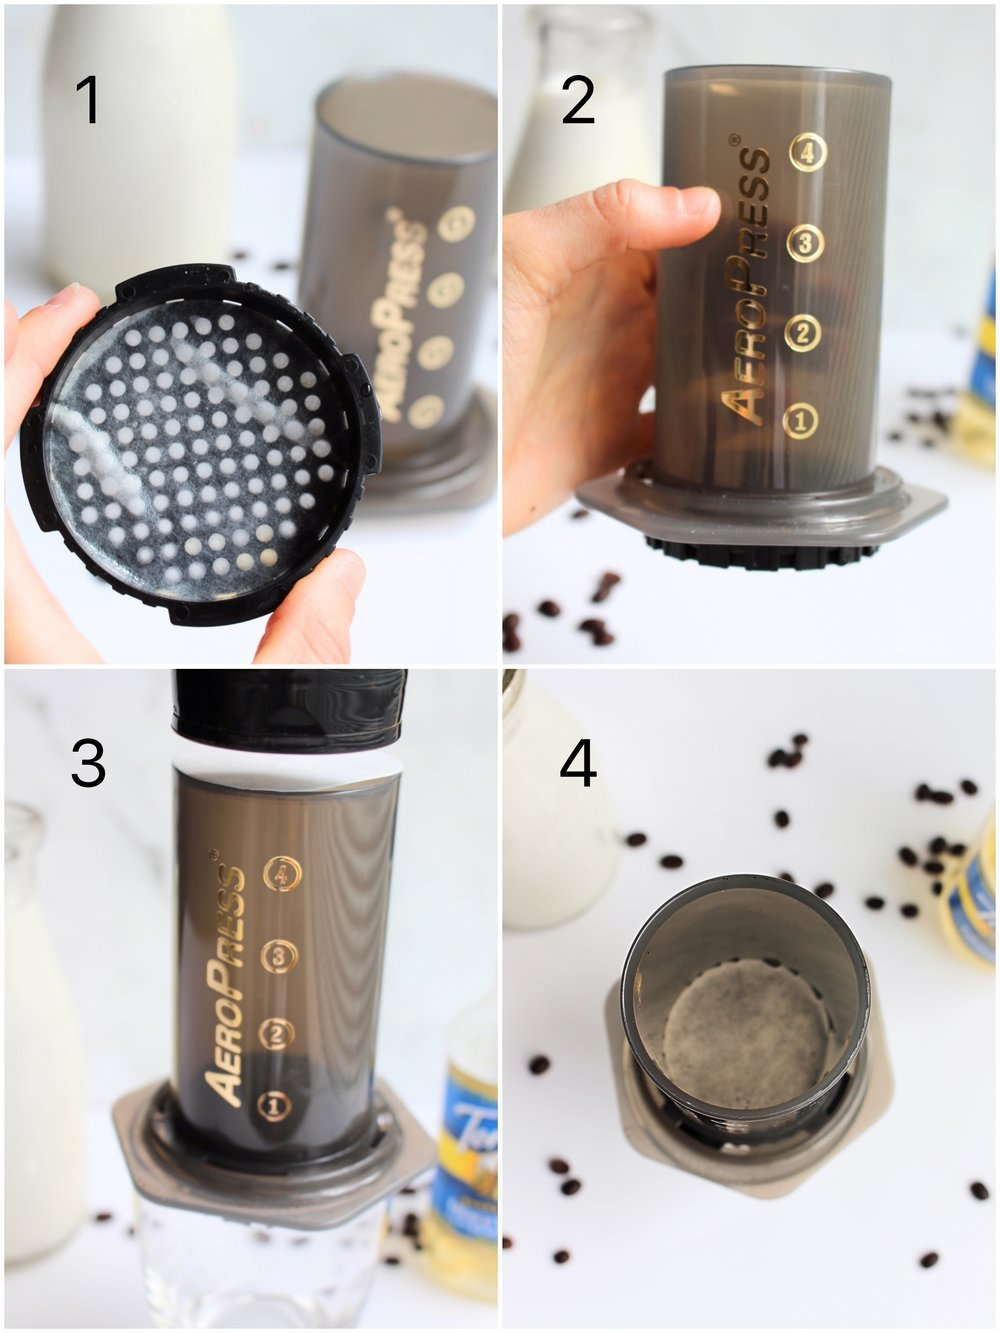 How to make an iced latte with an aeropress